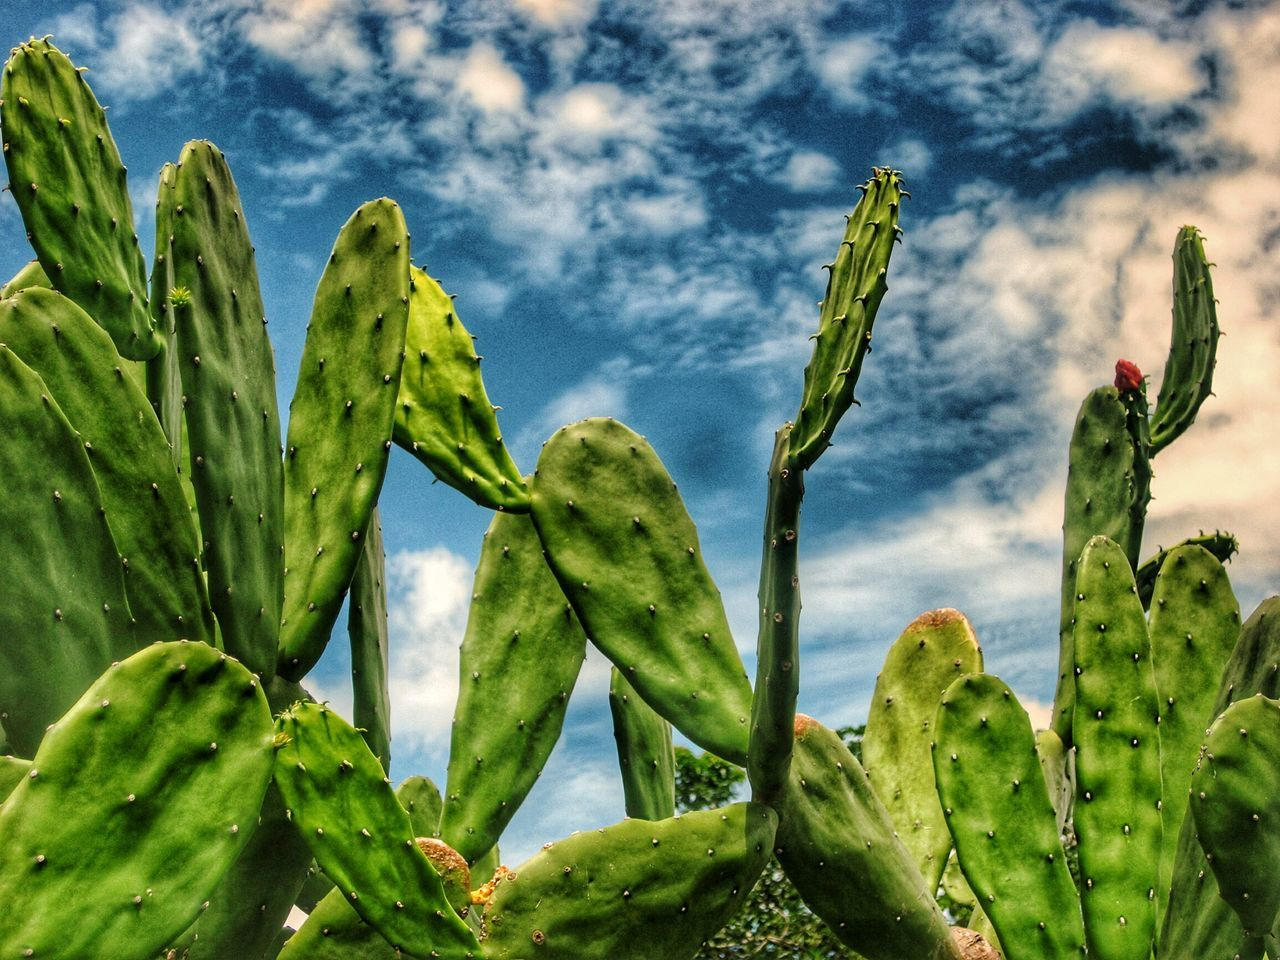 growth, cactus, green color, nature, plant, no people, sky, day, cloud - sky, beauty in nature, outdoors, low angle view, close-up, prickly pear cactus, saguaro cactus, freshness